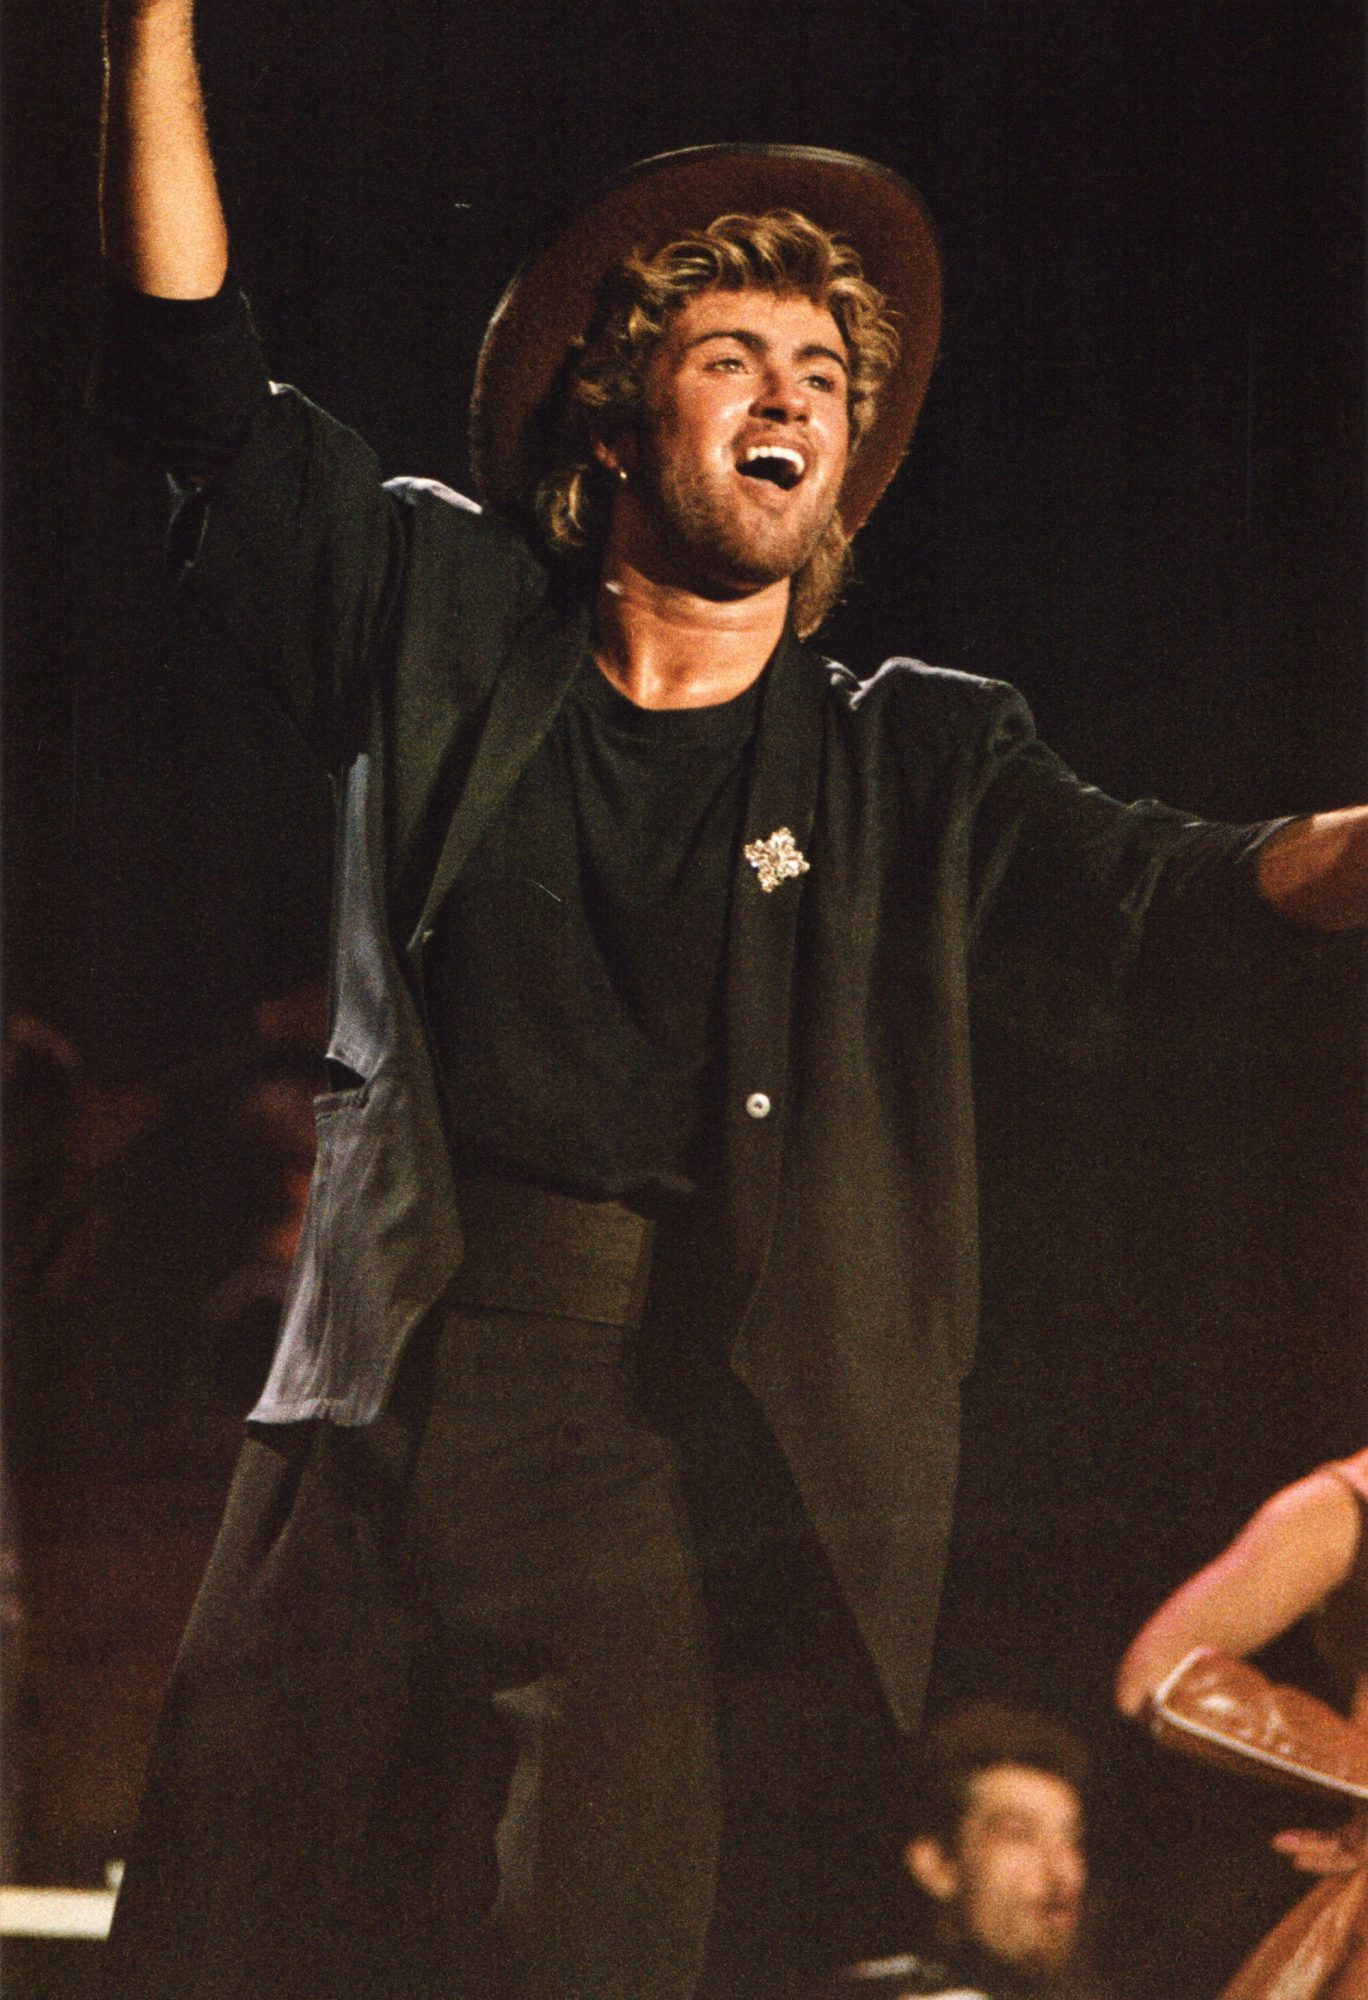 Wham Perform At Birmingham NEC In 1985